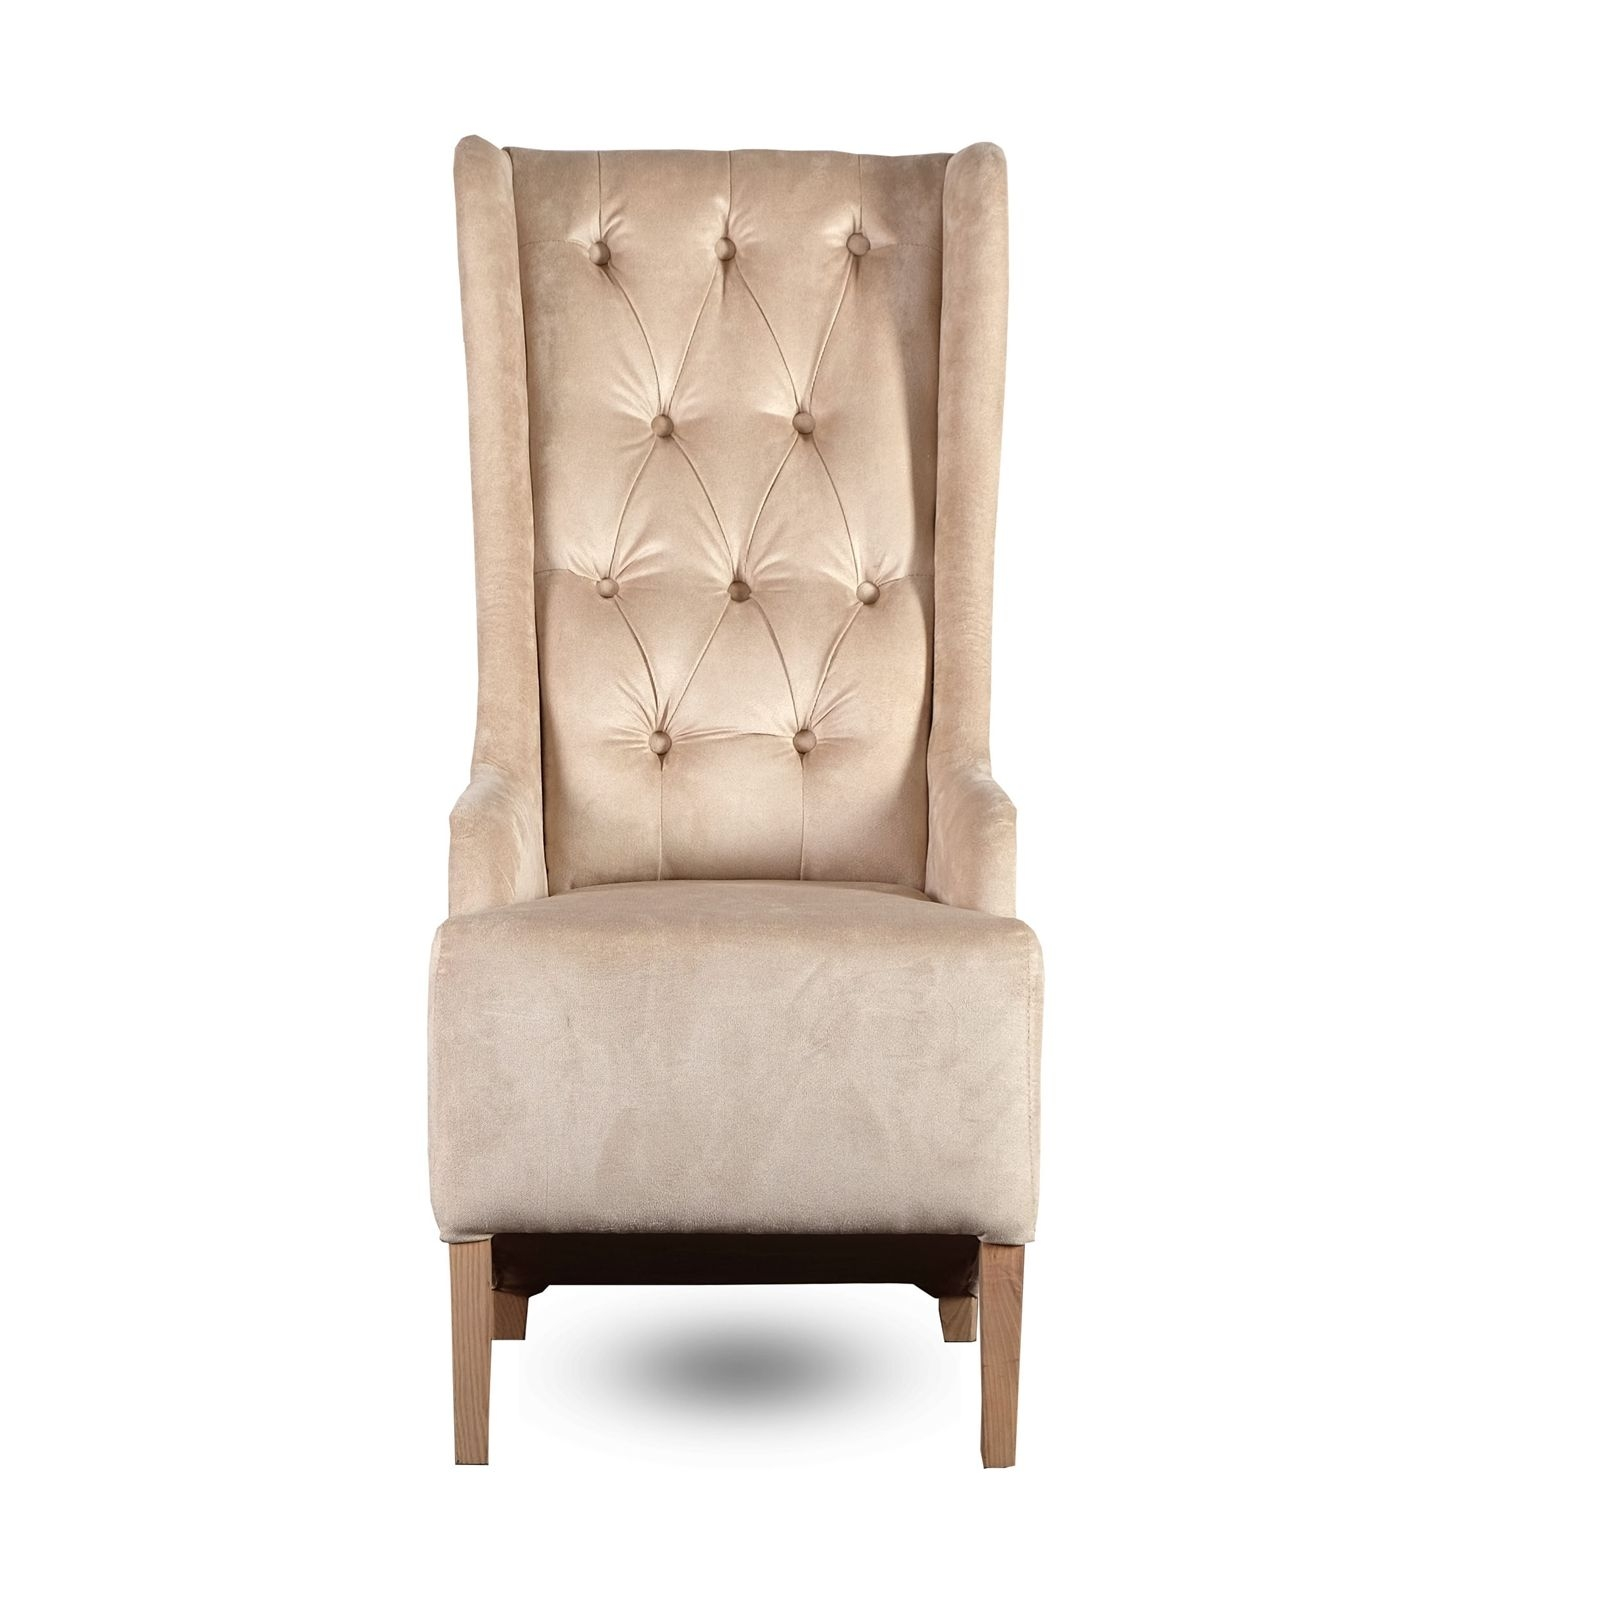 "Padded Design Chair ""New York""  Velvet Cover Beige  Living Room Chair  Ebay"